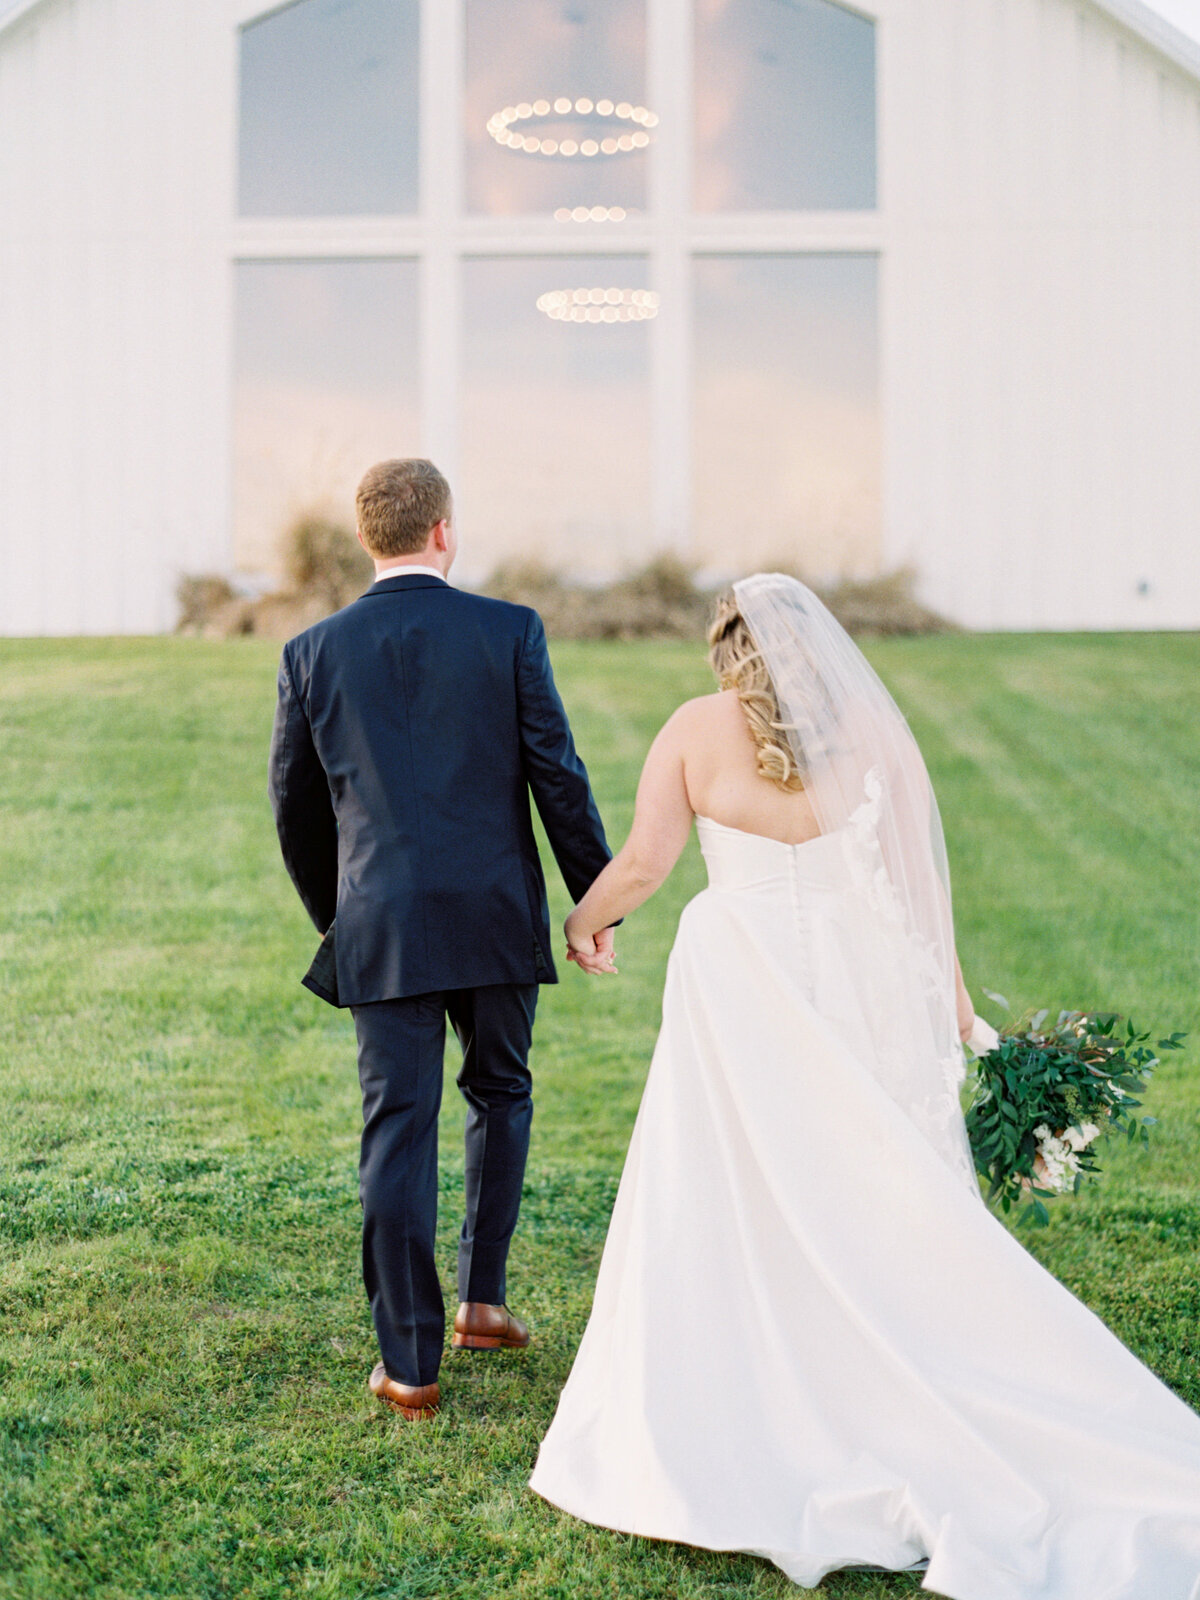 the-farmhouse-wedding-houston-texas-wedding-photographer-mackenzie-reiter-photography-87